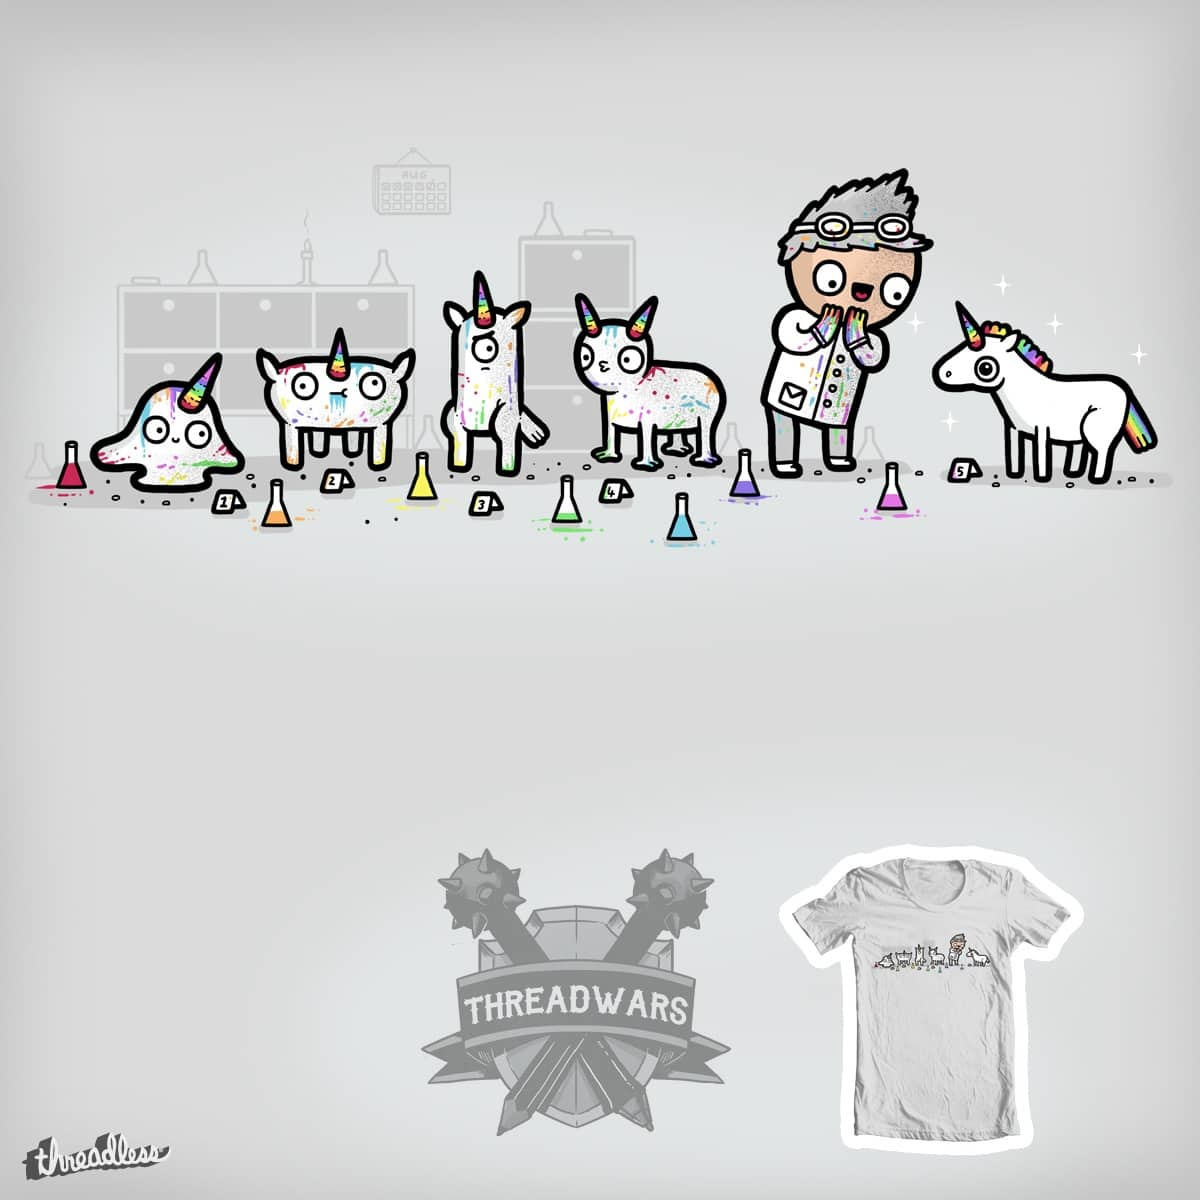 The perfect creation by randyotter3000 on Threadless